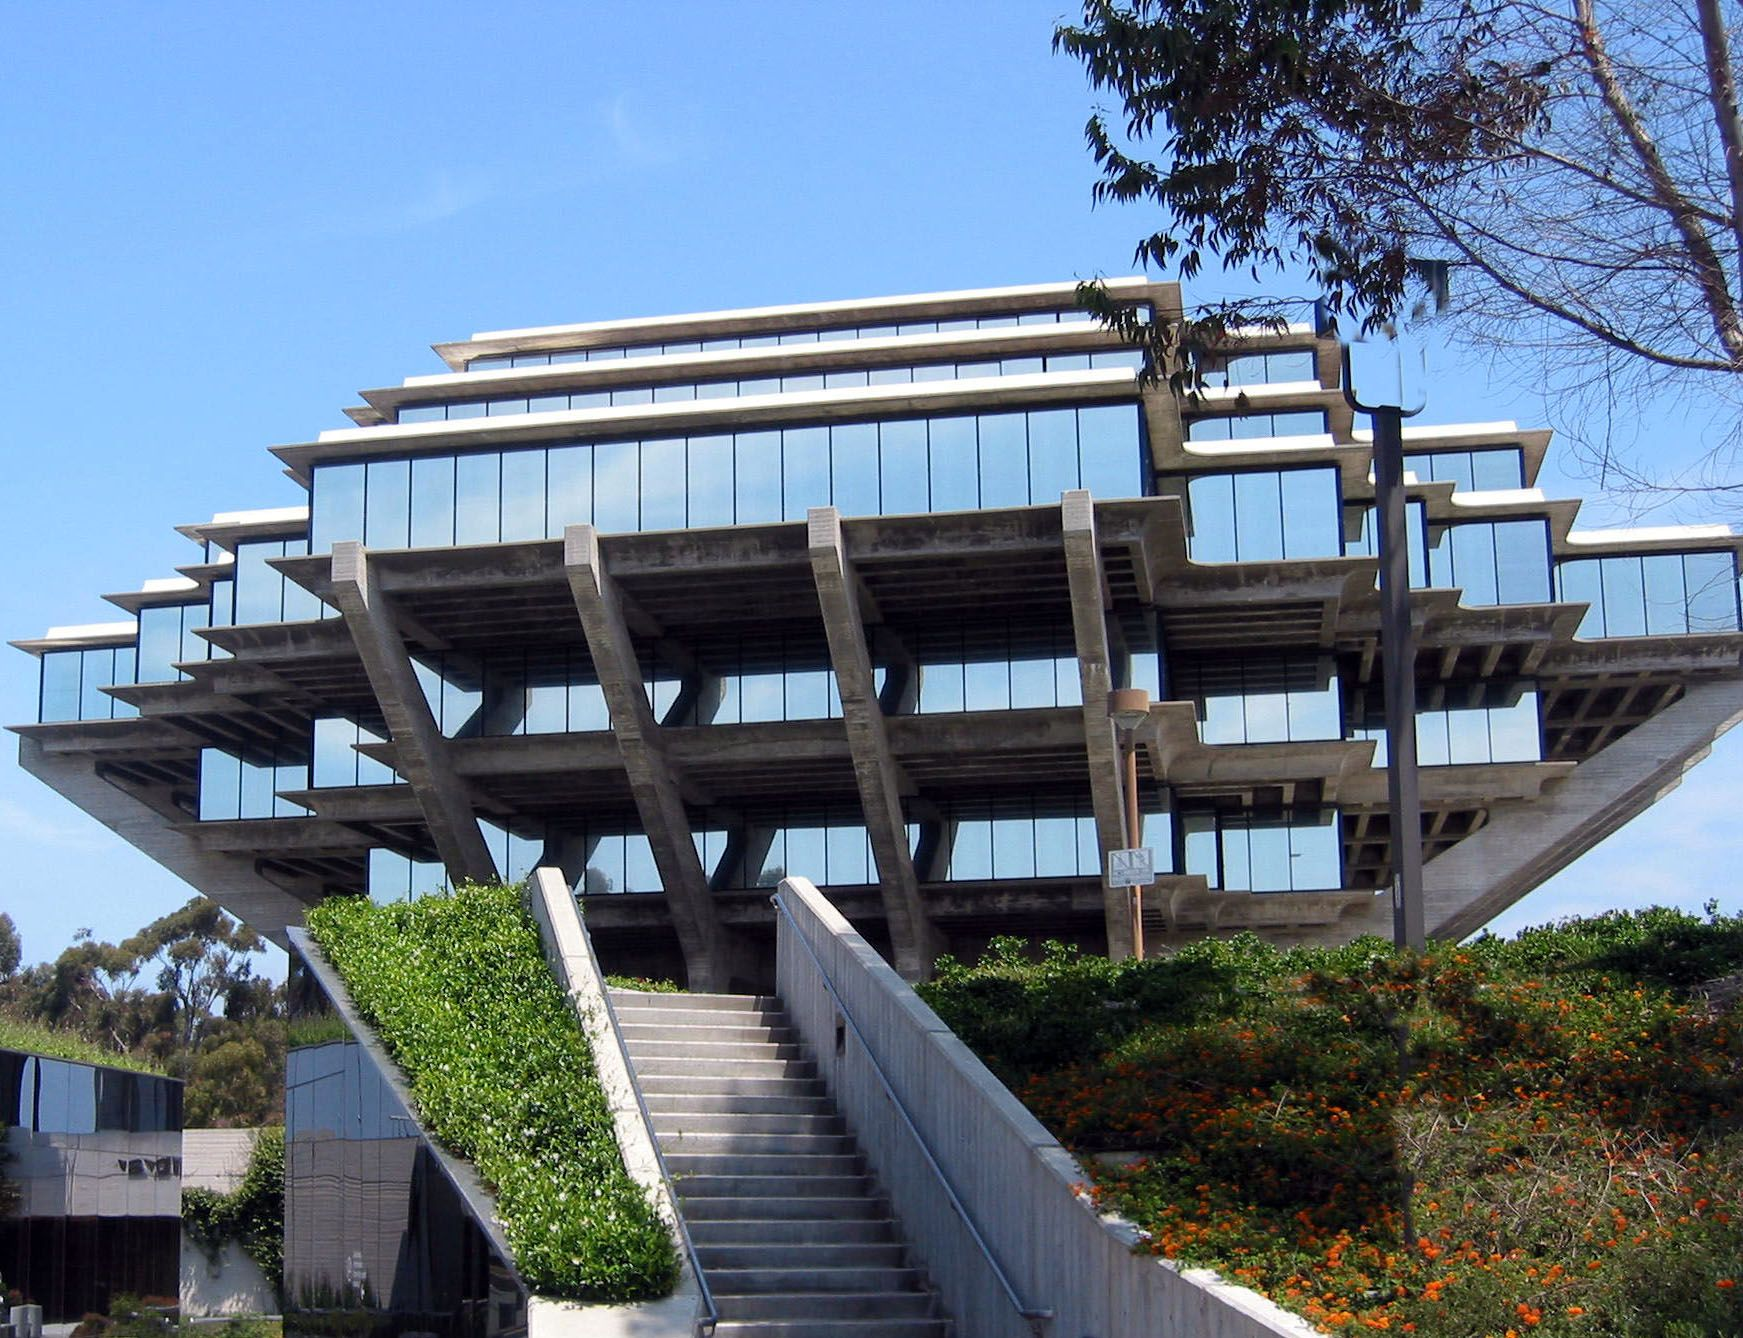 Uc San Diego S Geisel Library Named Among Most Modern Libraries